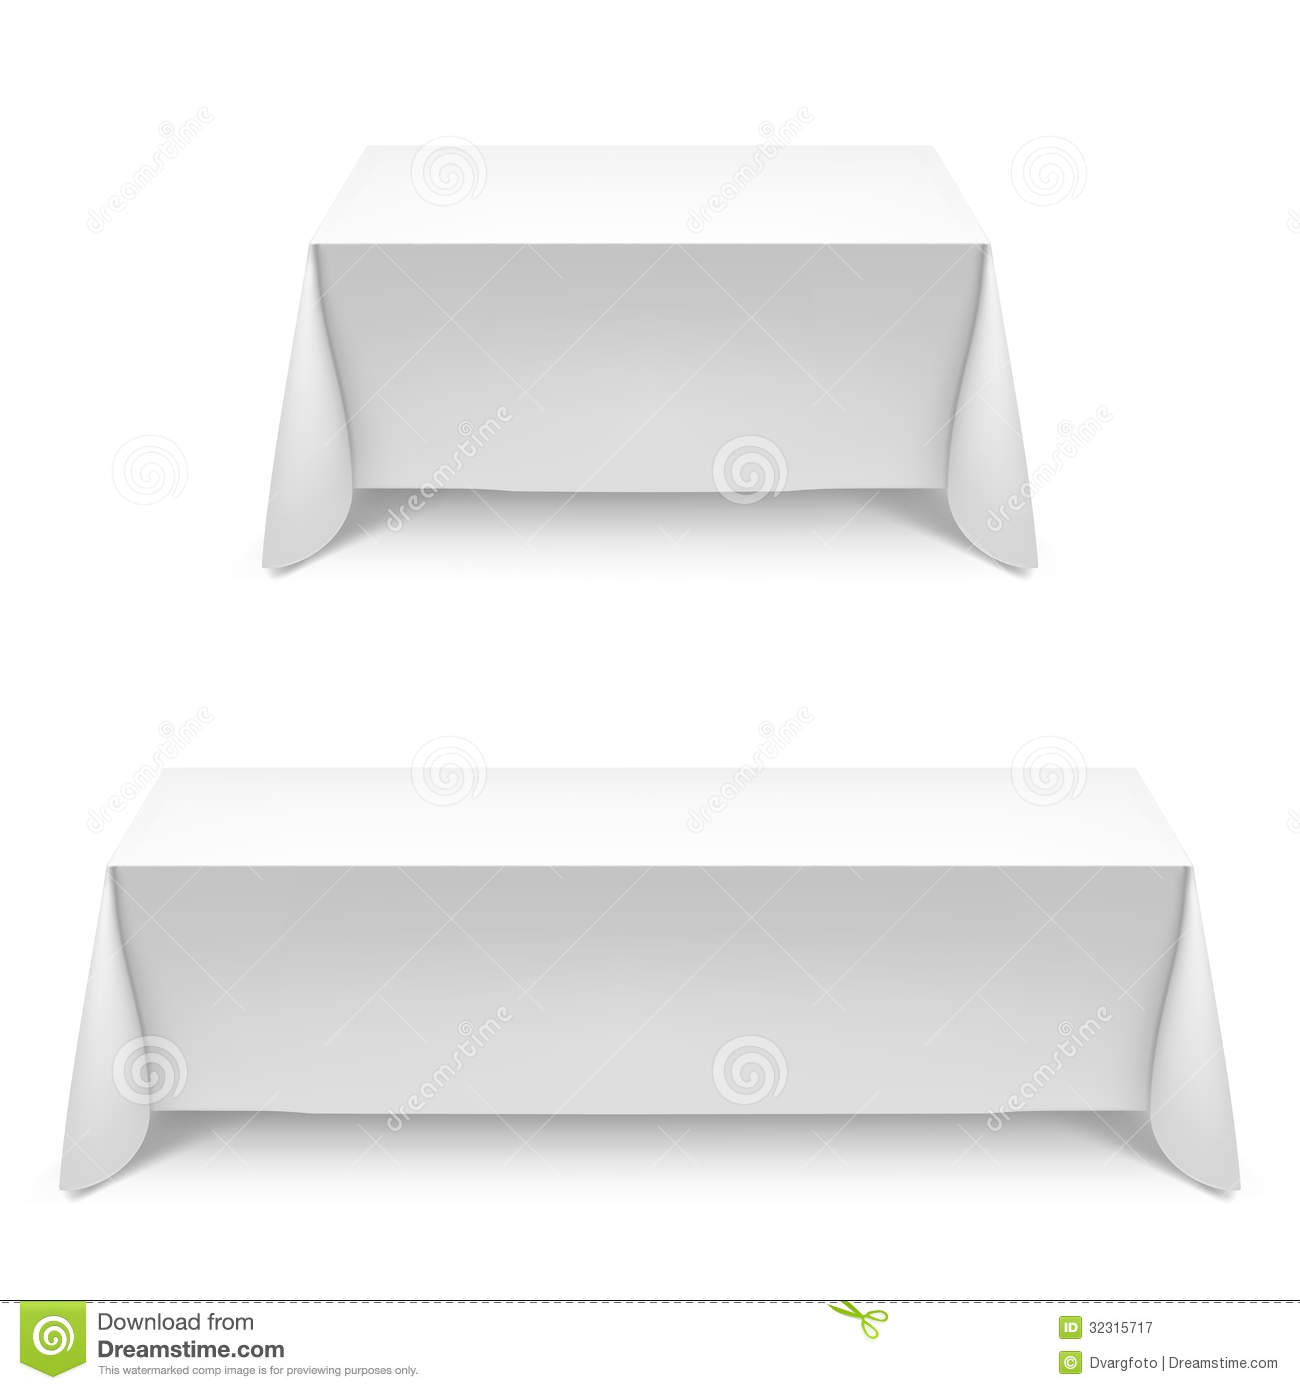 Two white rectangular with table tablecloth. Illustration on white.